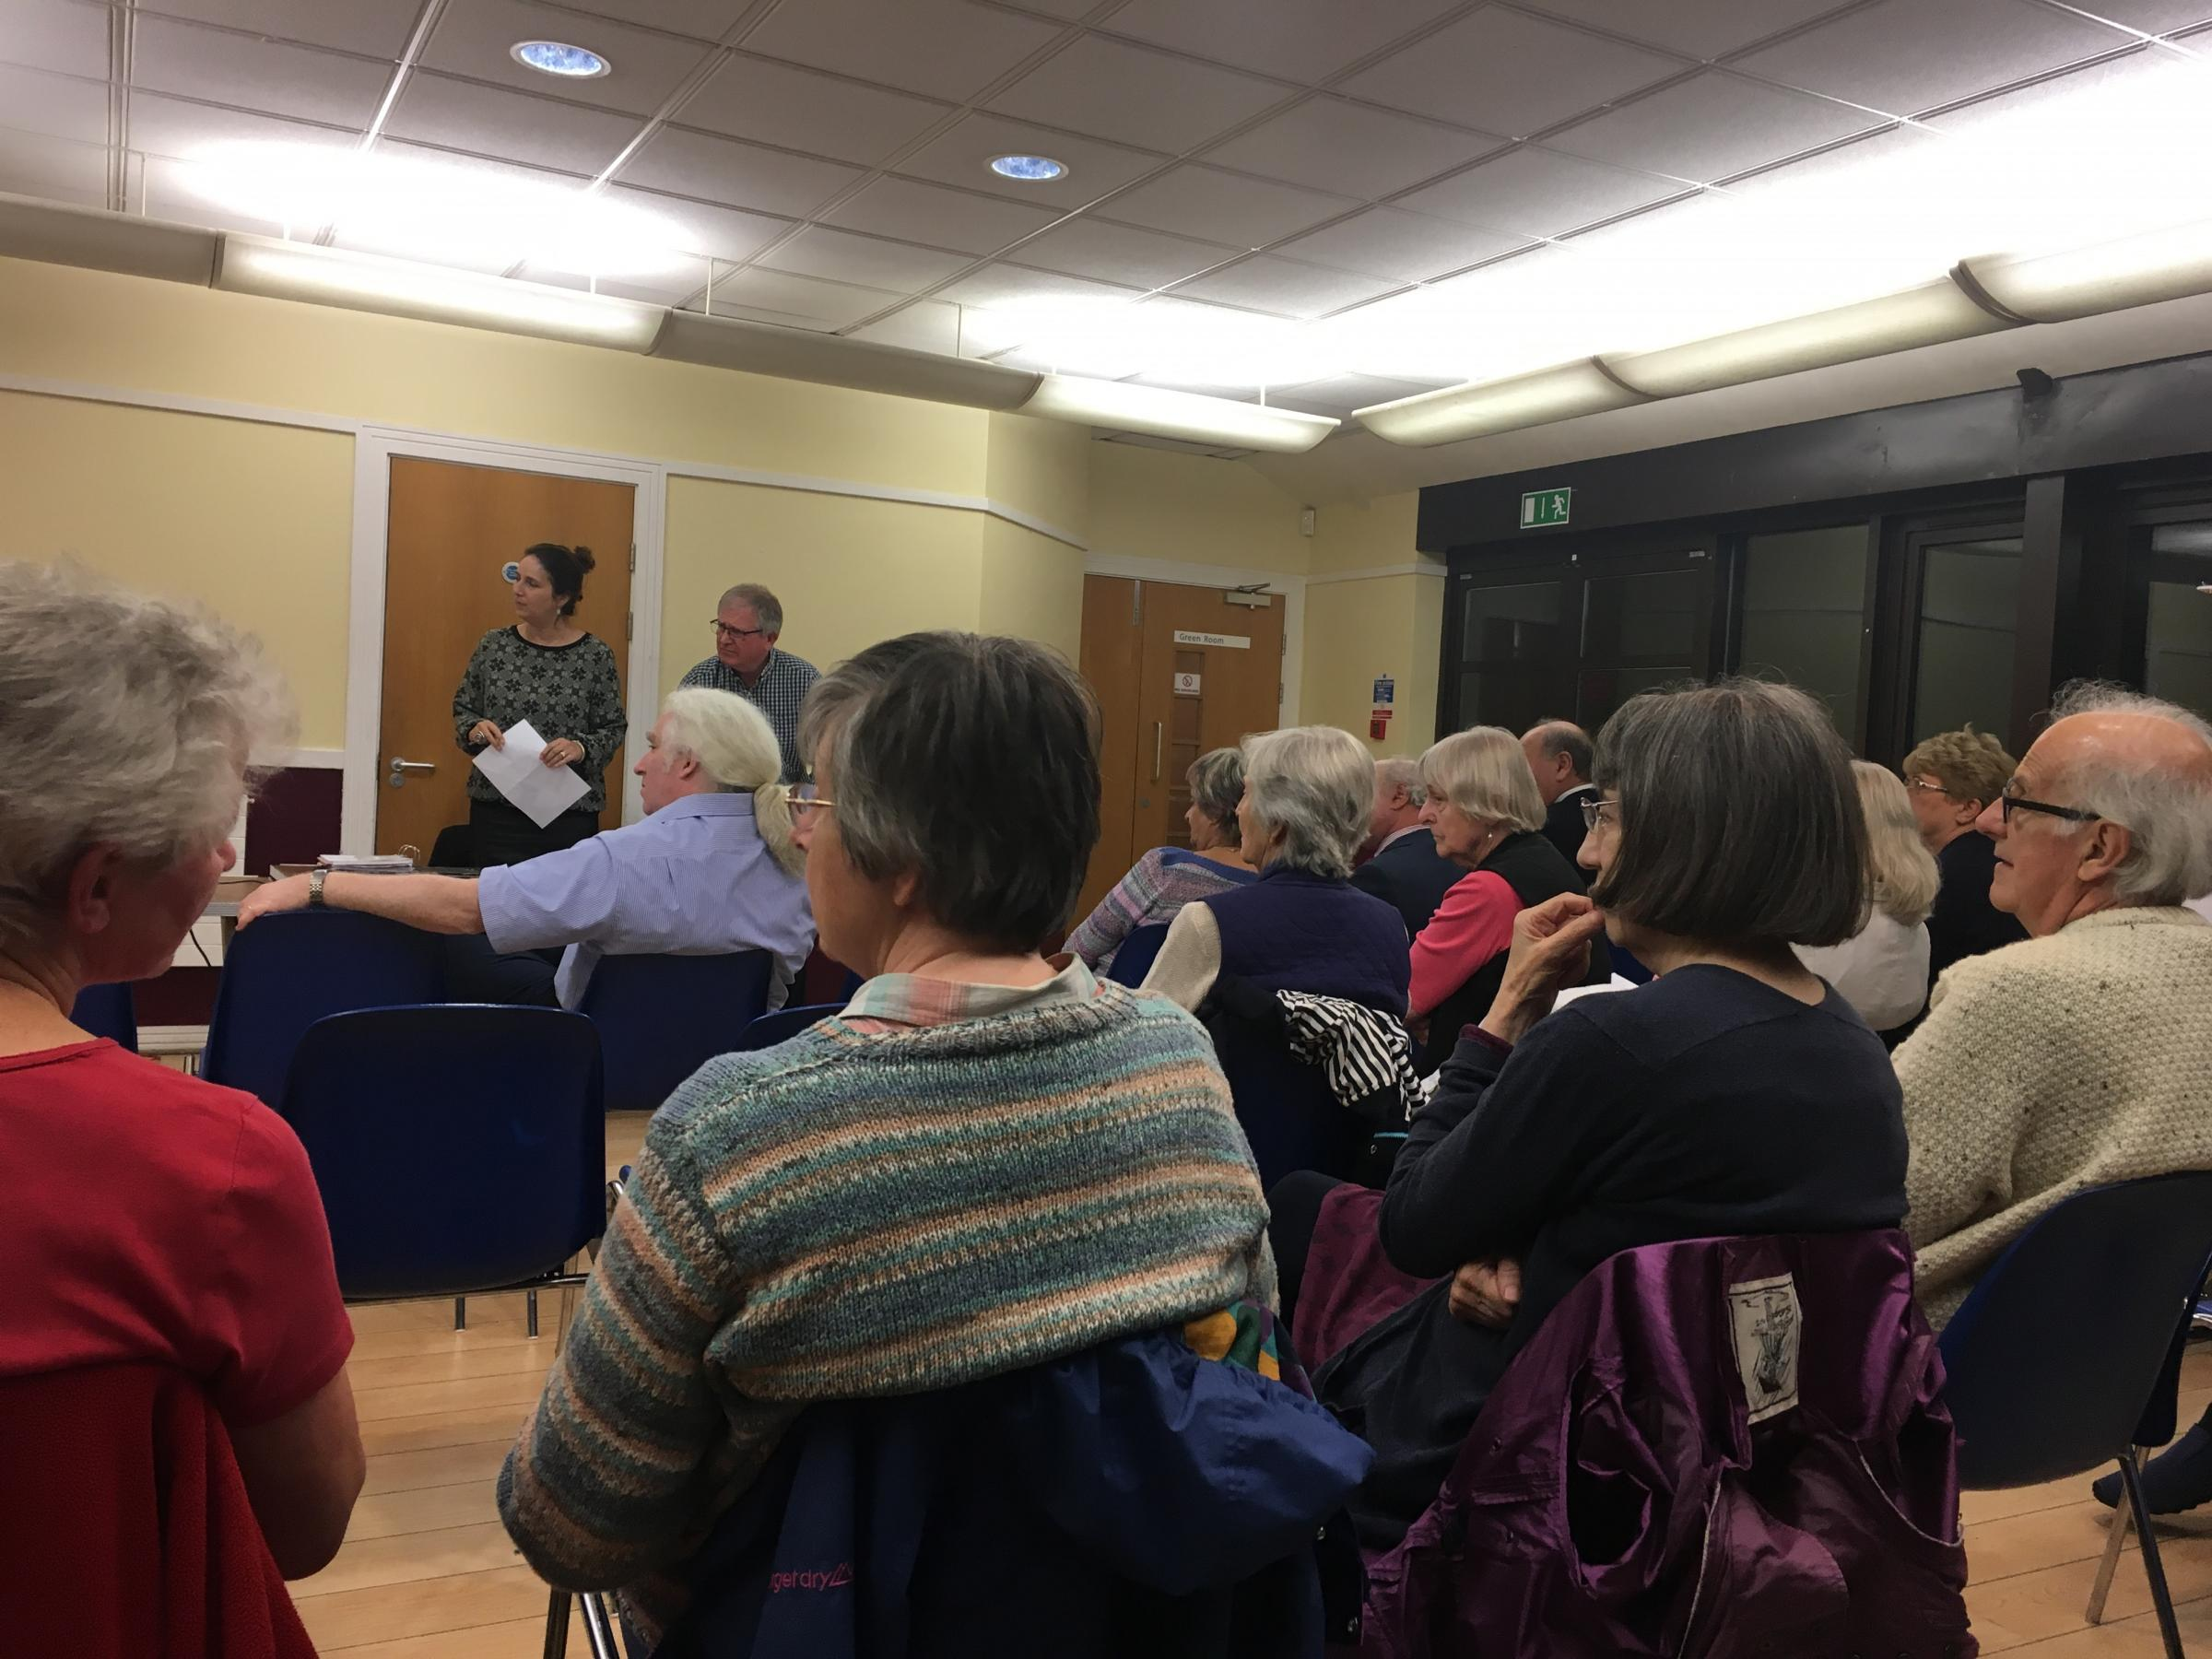 Members of the Bushey Public Forum met to discuss NHS in the area